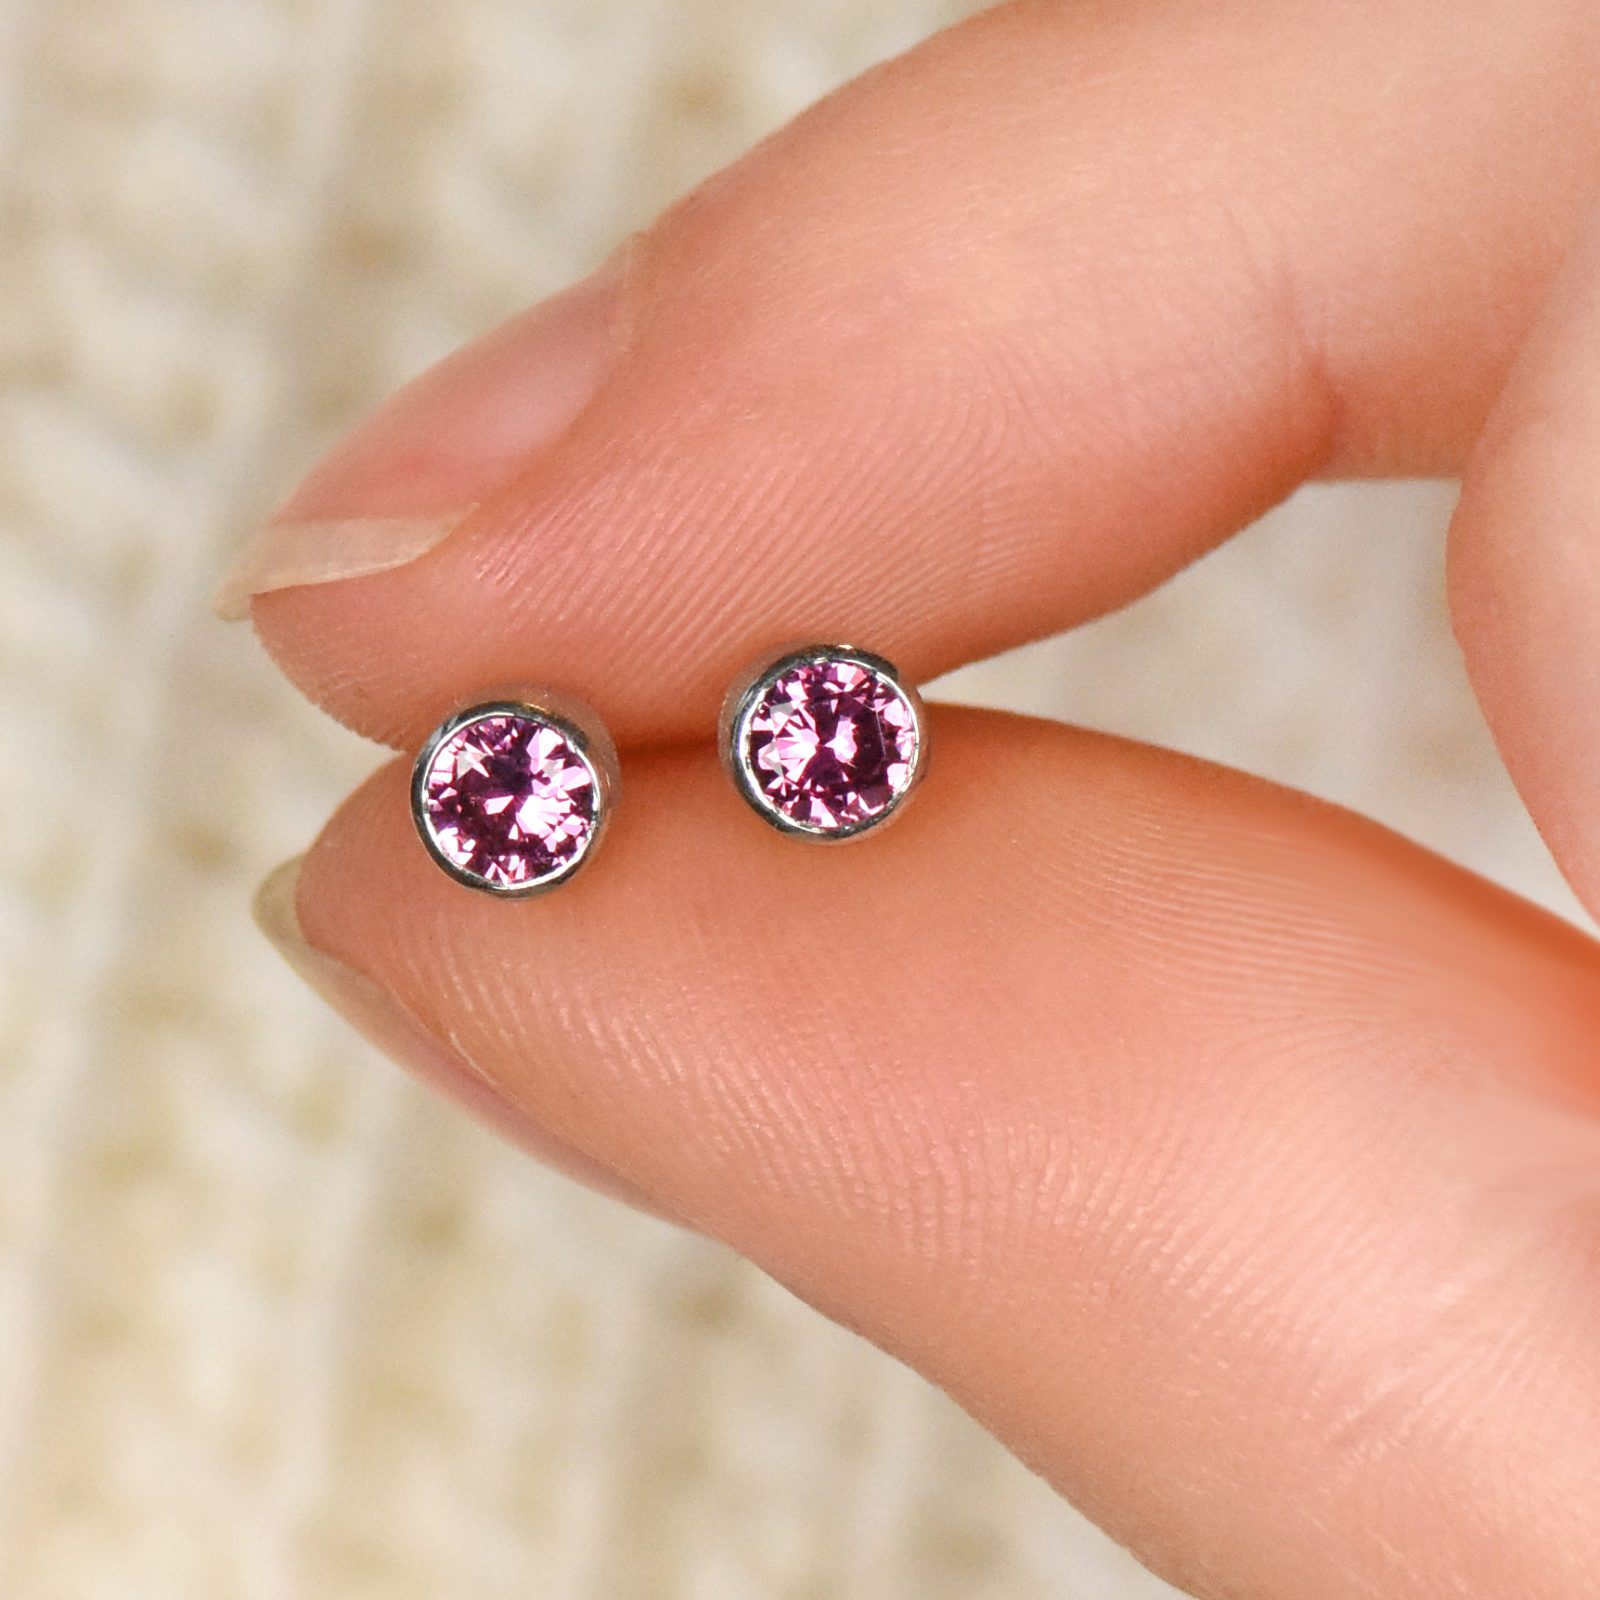 18ct White Gold Pink Sapphire Stud Earrings Lilia Nash